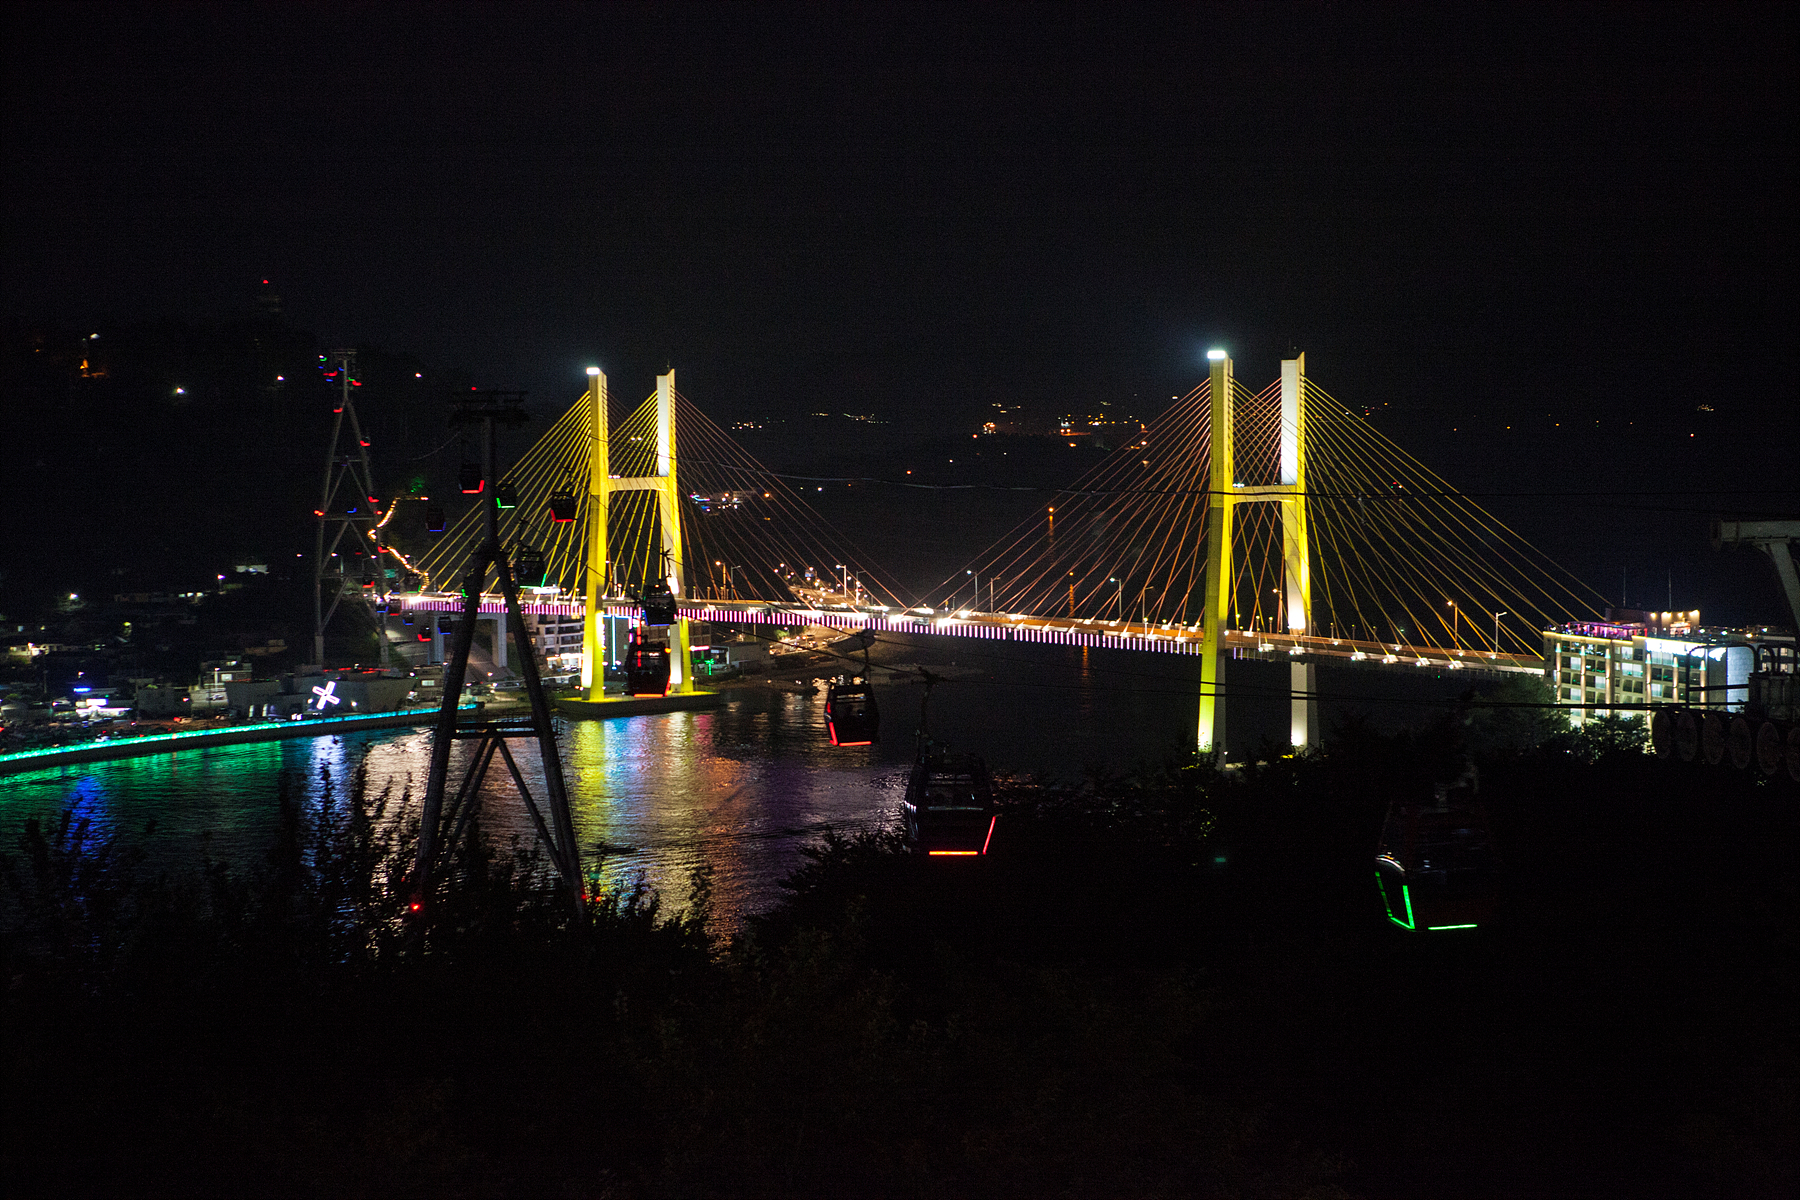 Dolsan Park and Dolsan Bridge, where the sea and light come together